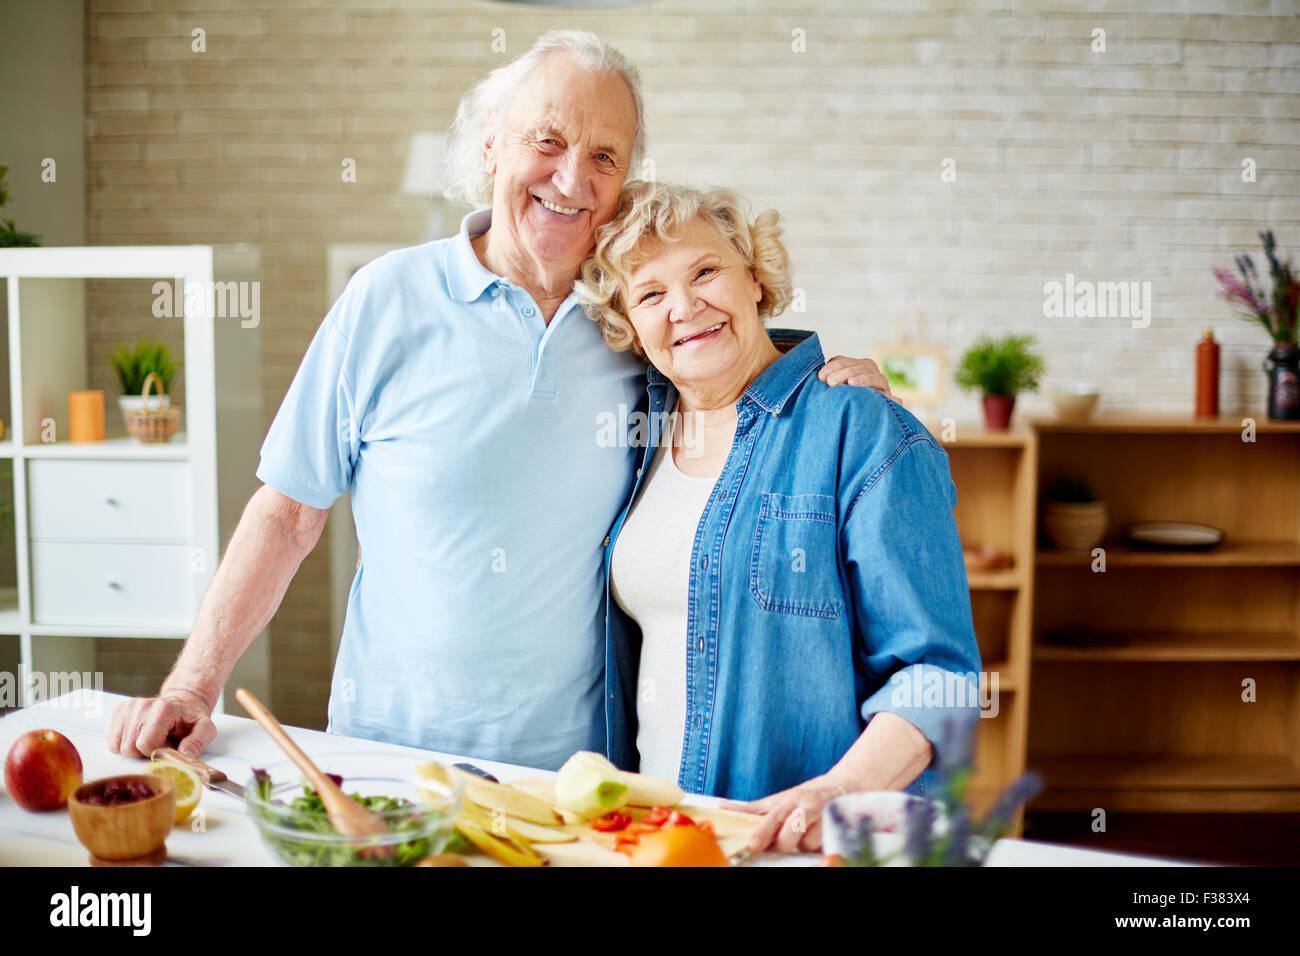 Cheerful seniors standing by table with fruits and looking at camera in the kitchen - Stock Image